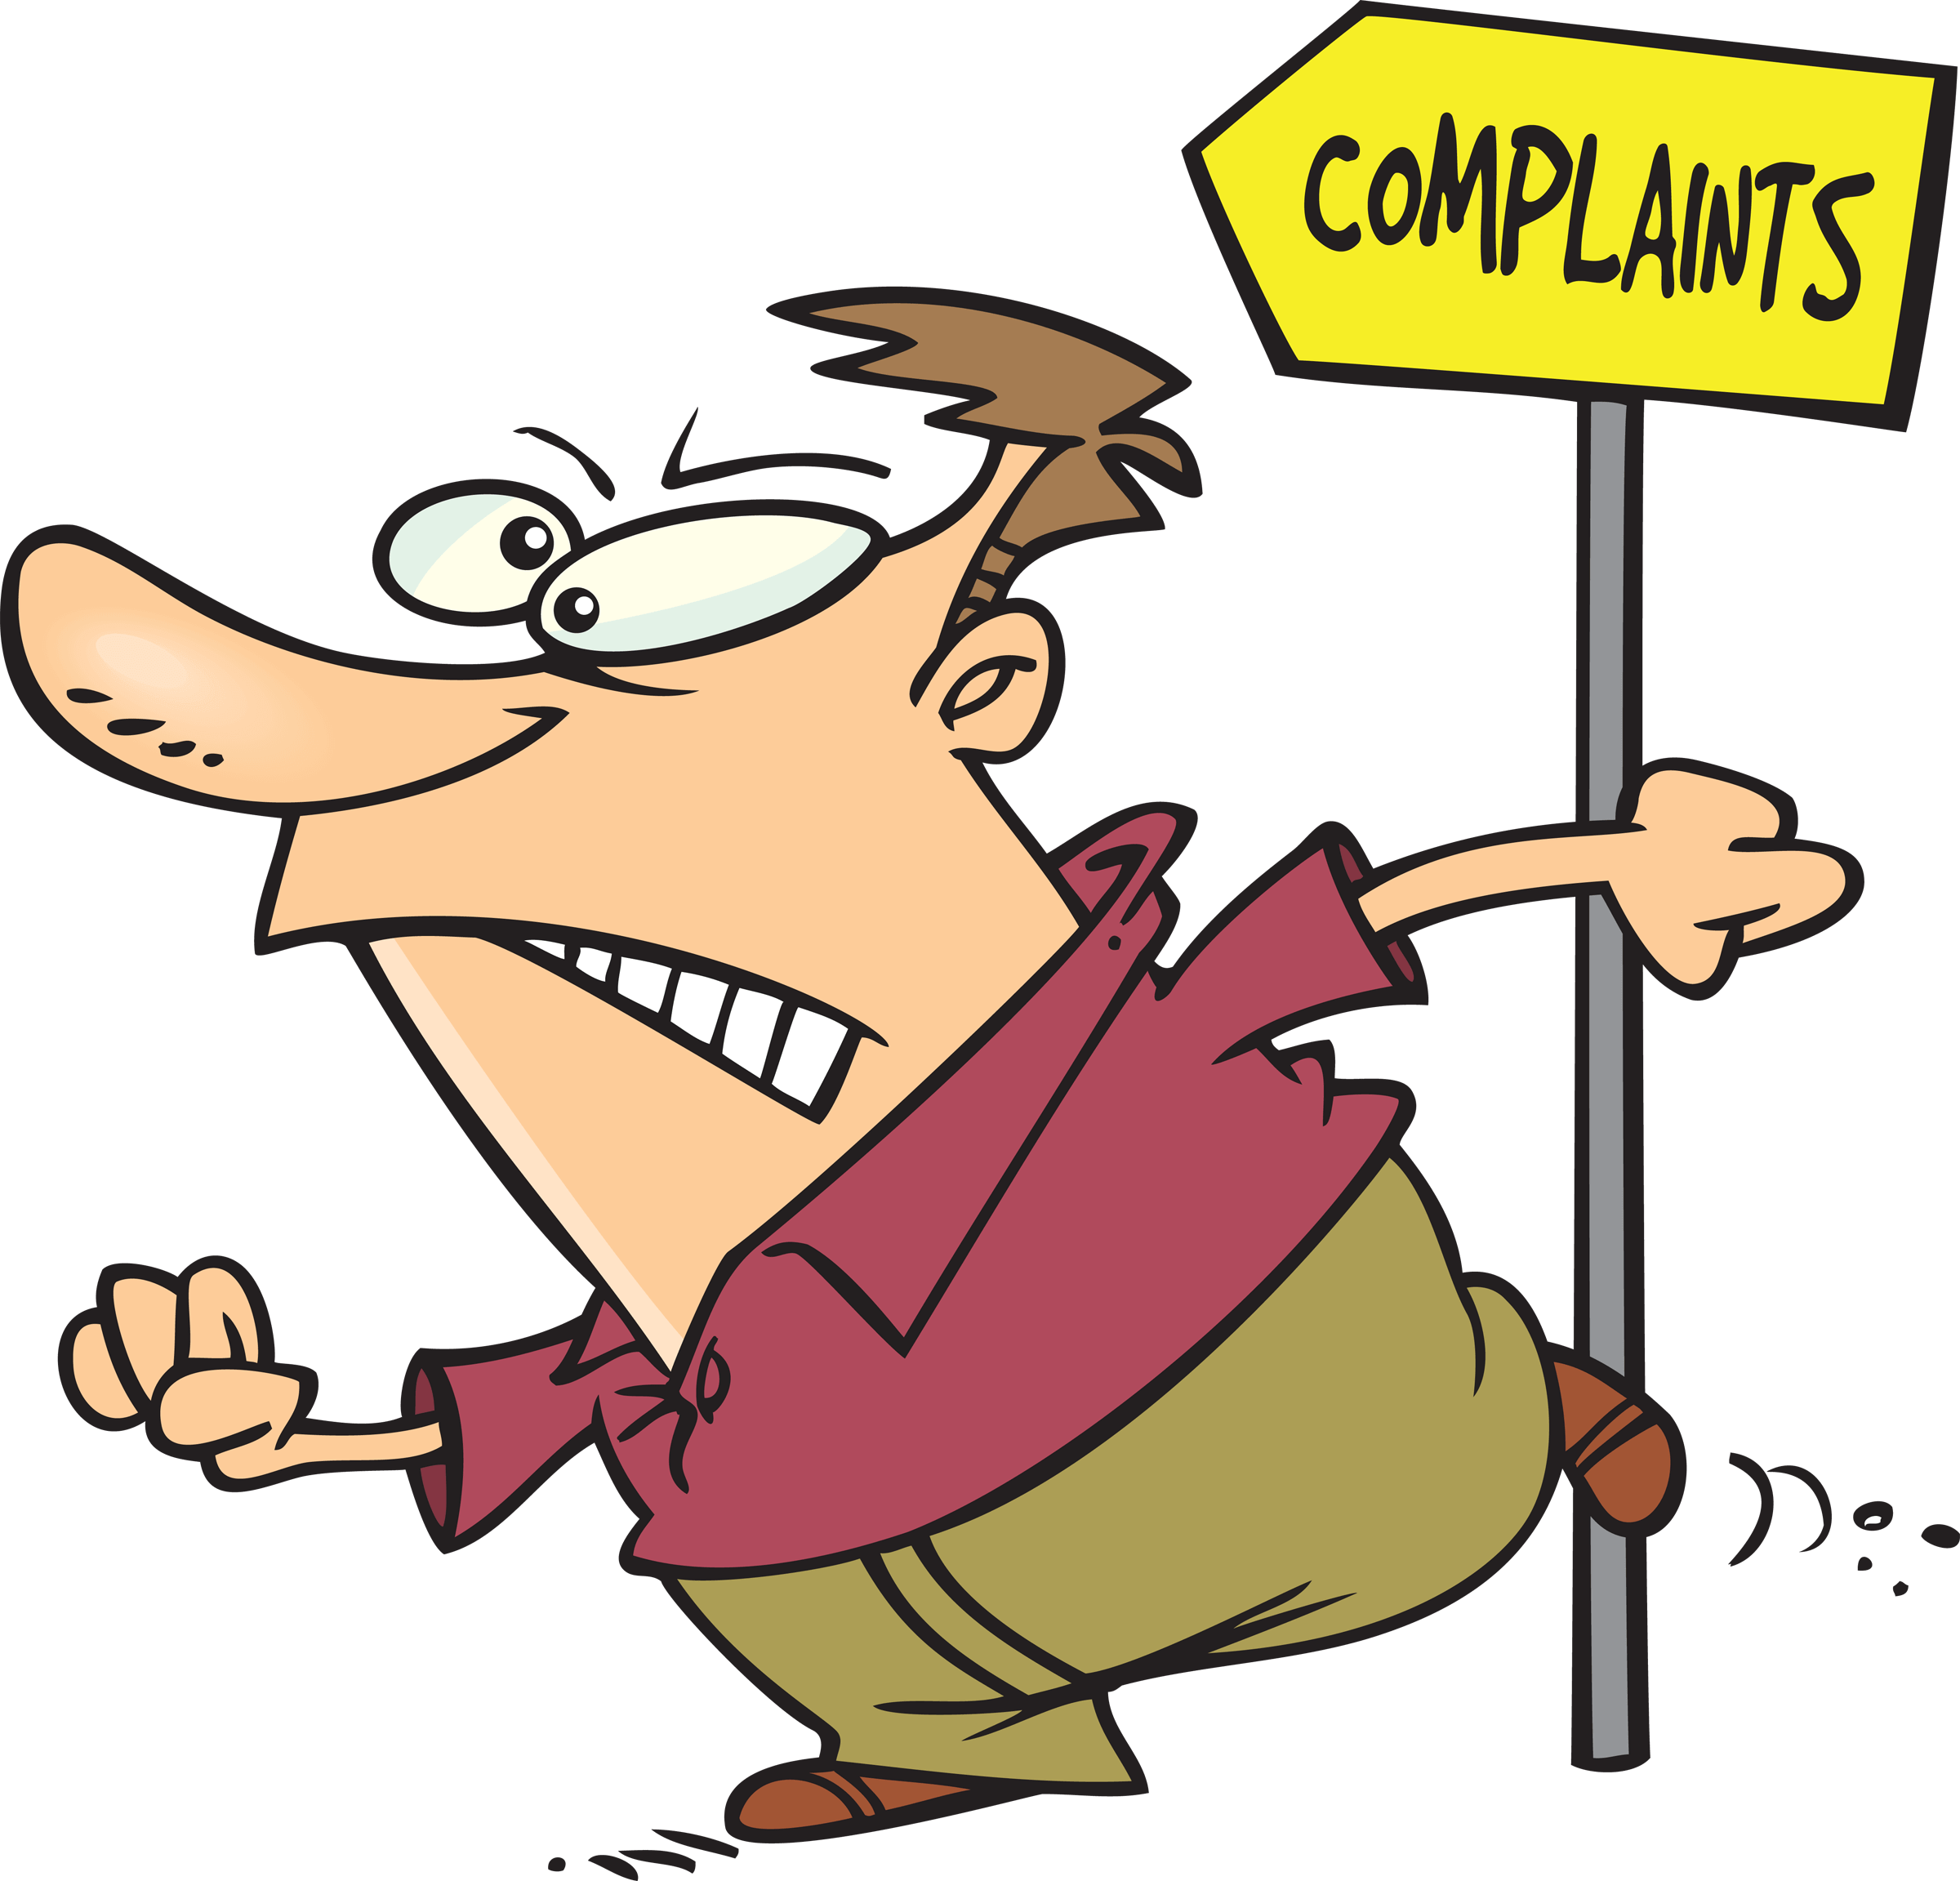 5 reasons to use simple manufacturing software and avoid complaints in B2C daily practice